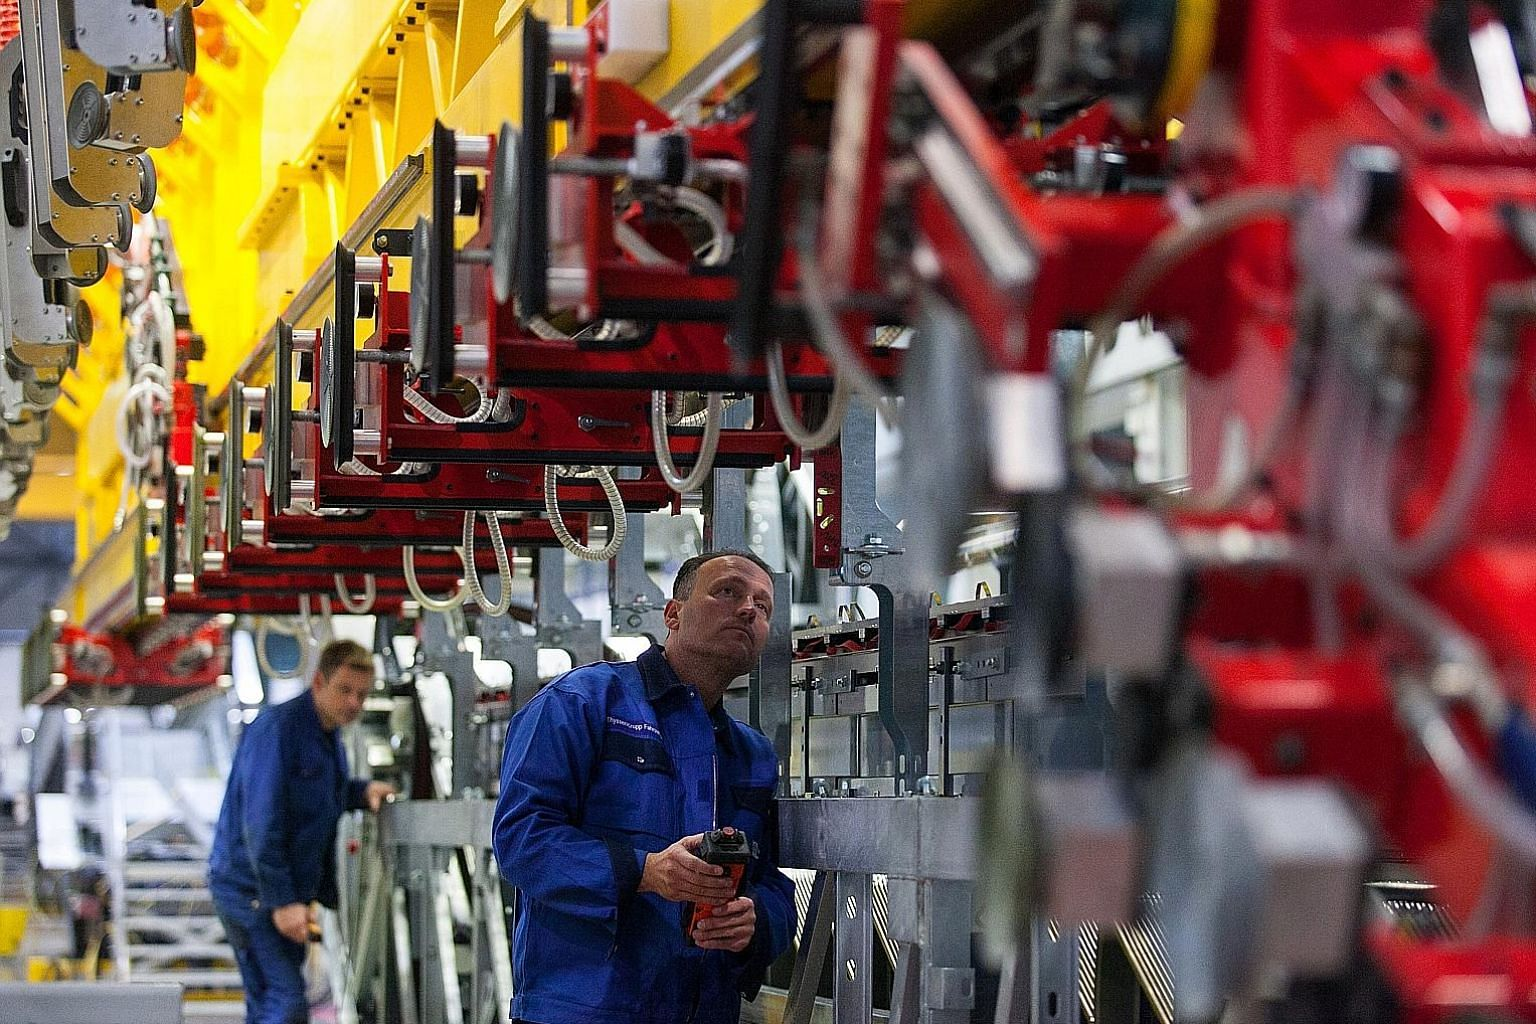 Employees at the Thyssenkrupp factory in Hamburg, Germany, working on assembling escalators. Brookfield Asset Management, which partnered Temasek, is still in the running for the elevator unit, say sources. PHOTO: BLOOMBERG